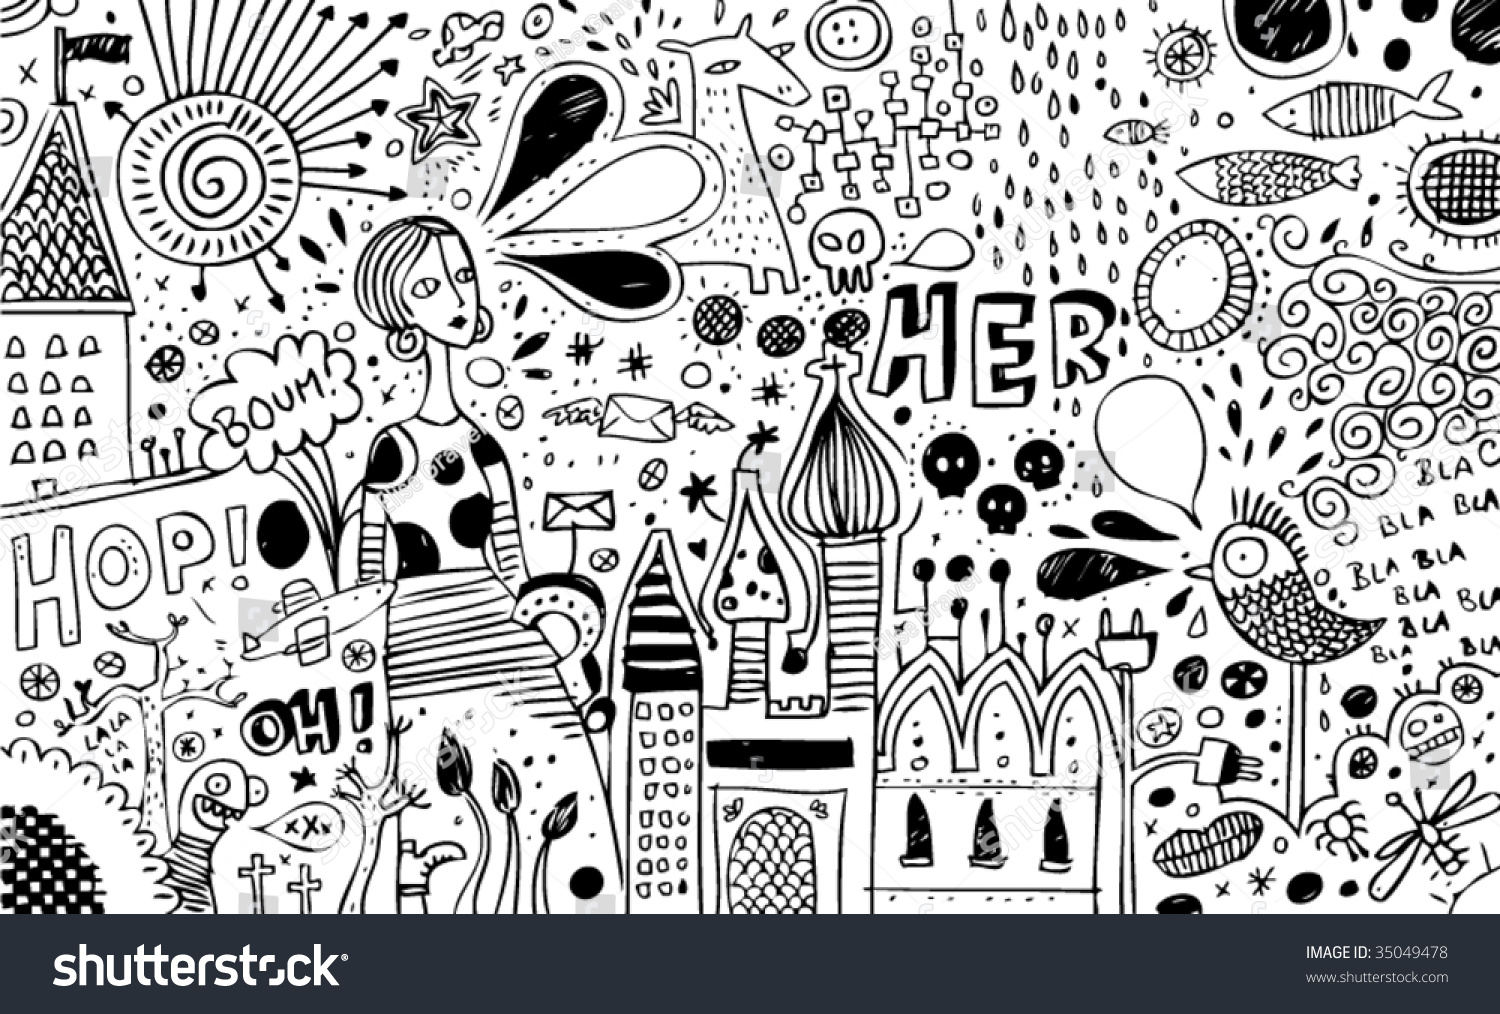 full page bw doodles stock vector royalty free 35049478 shutterstock